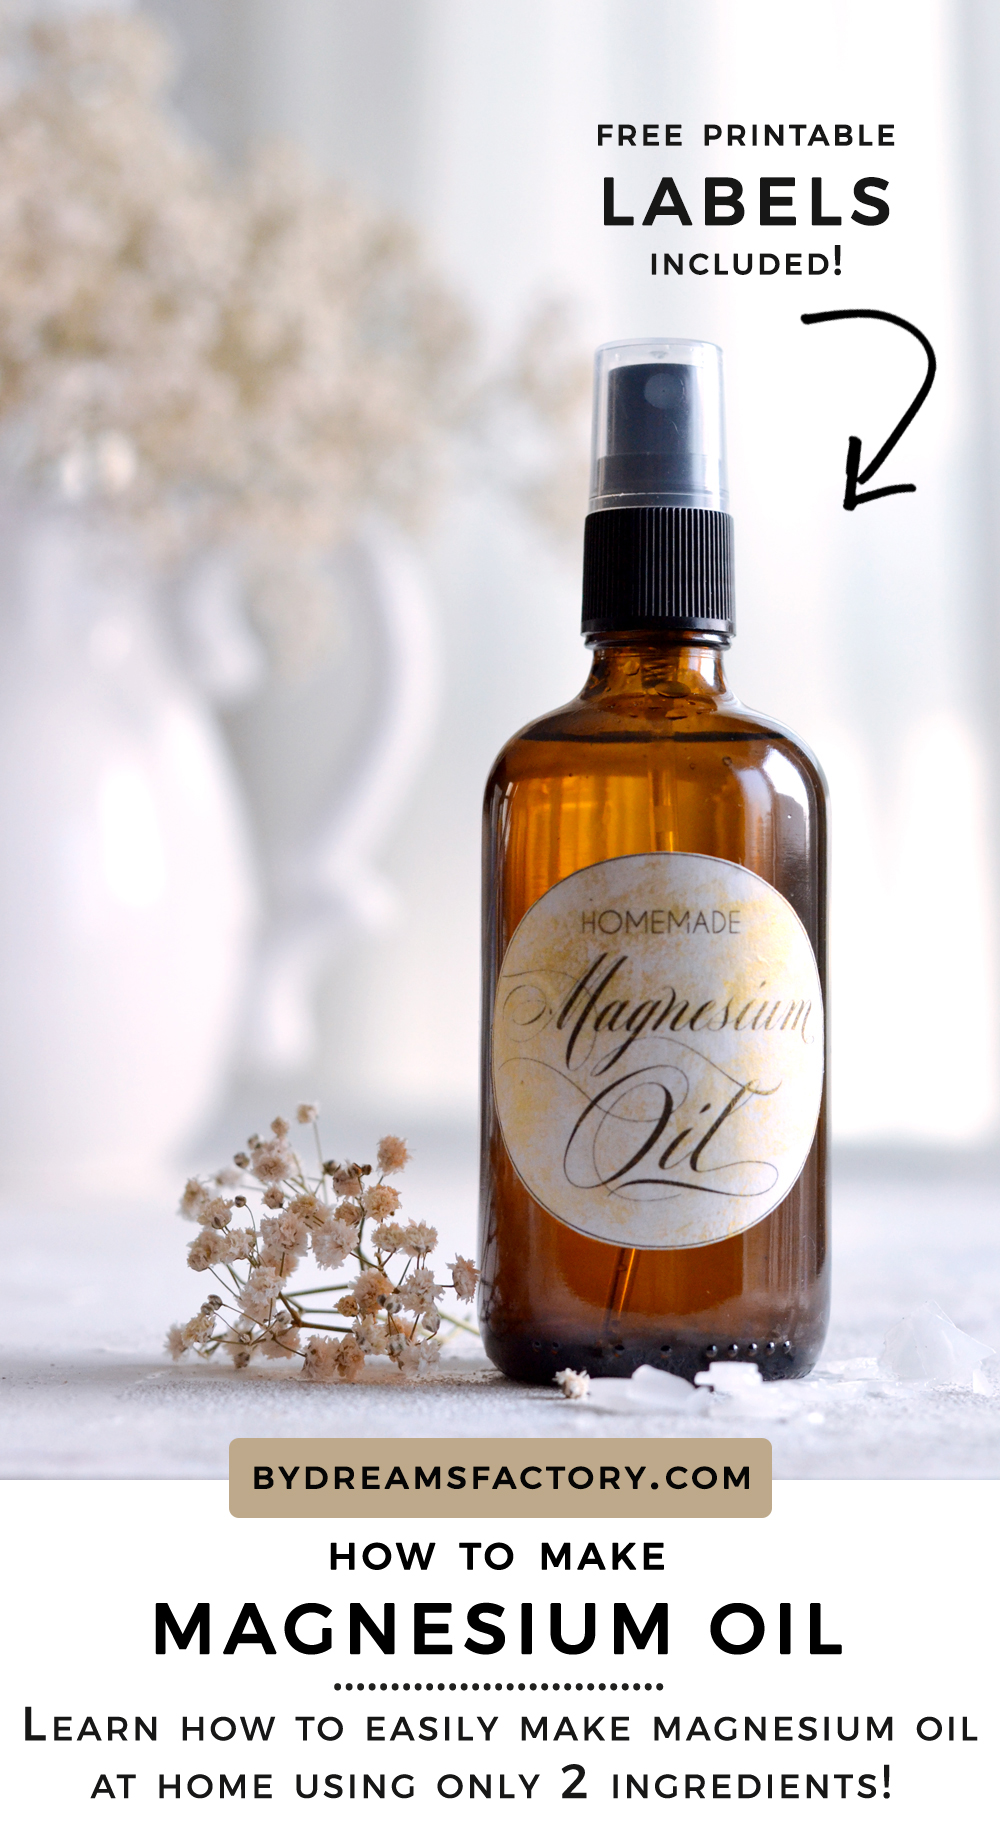 How to make magnesium oil - learn how easy it is to make magnesium oil at home using only two ingredients! Free printable labels included!